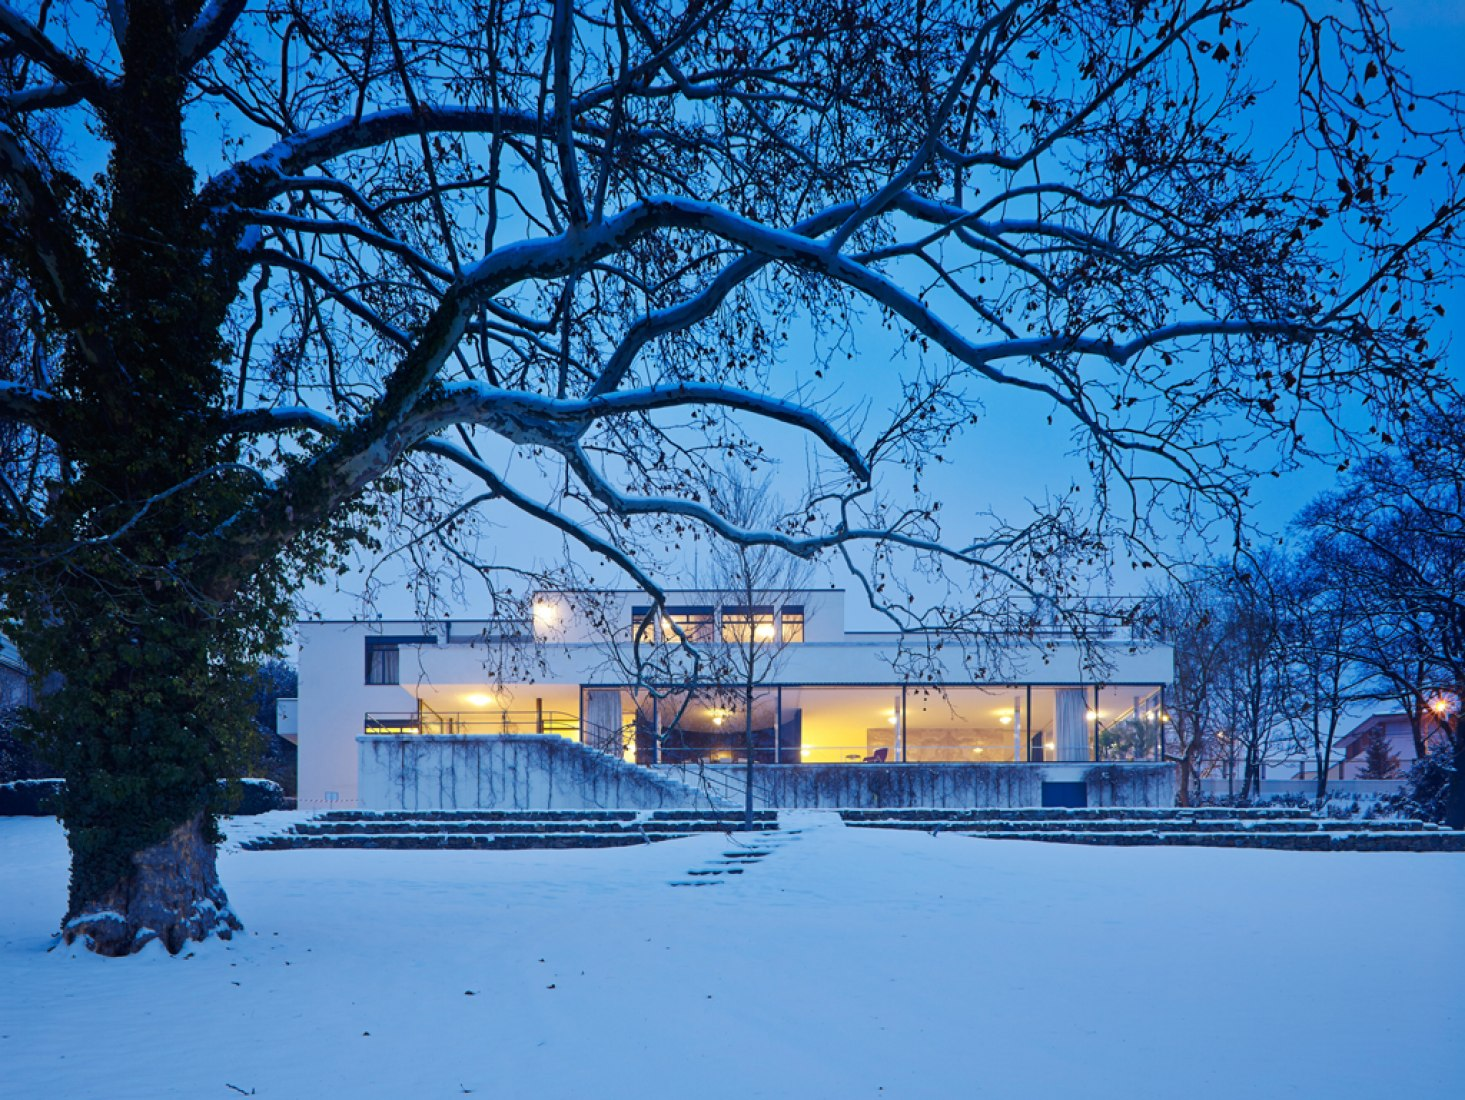 Haus Tugendhat, un documental de Dieter Reifarth.